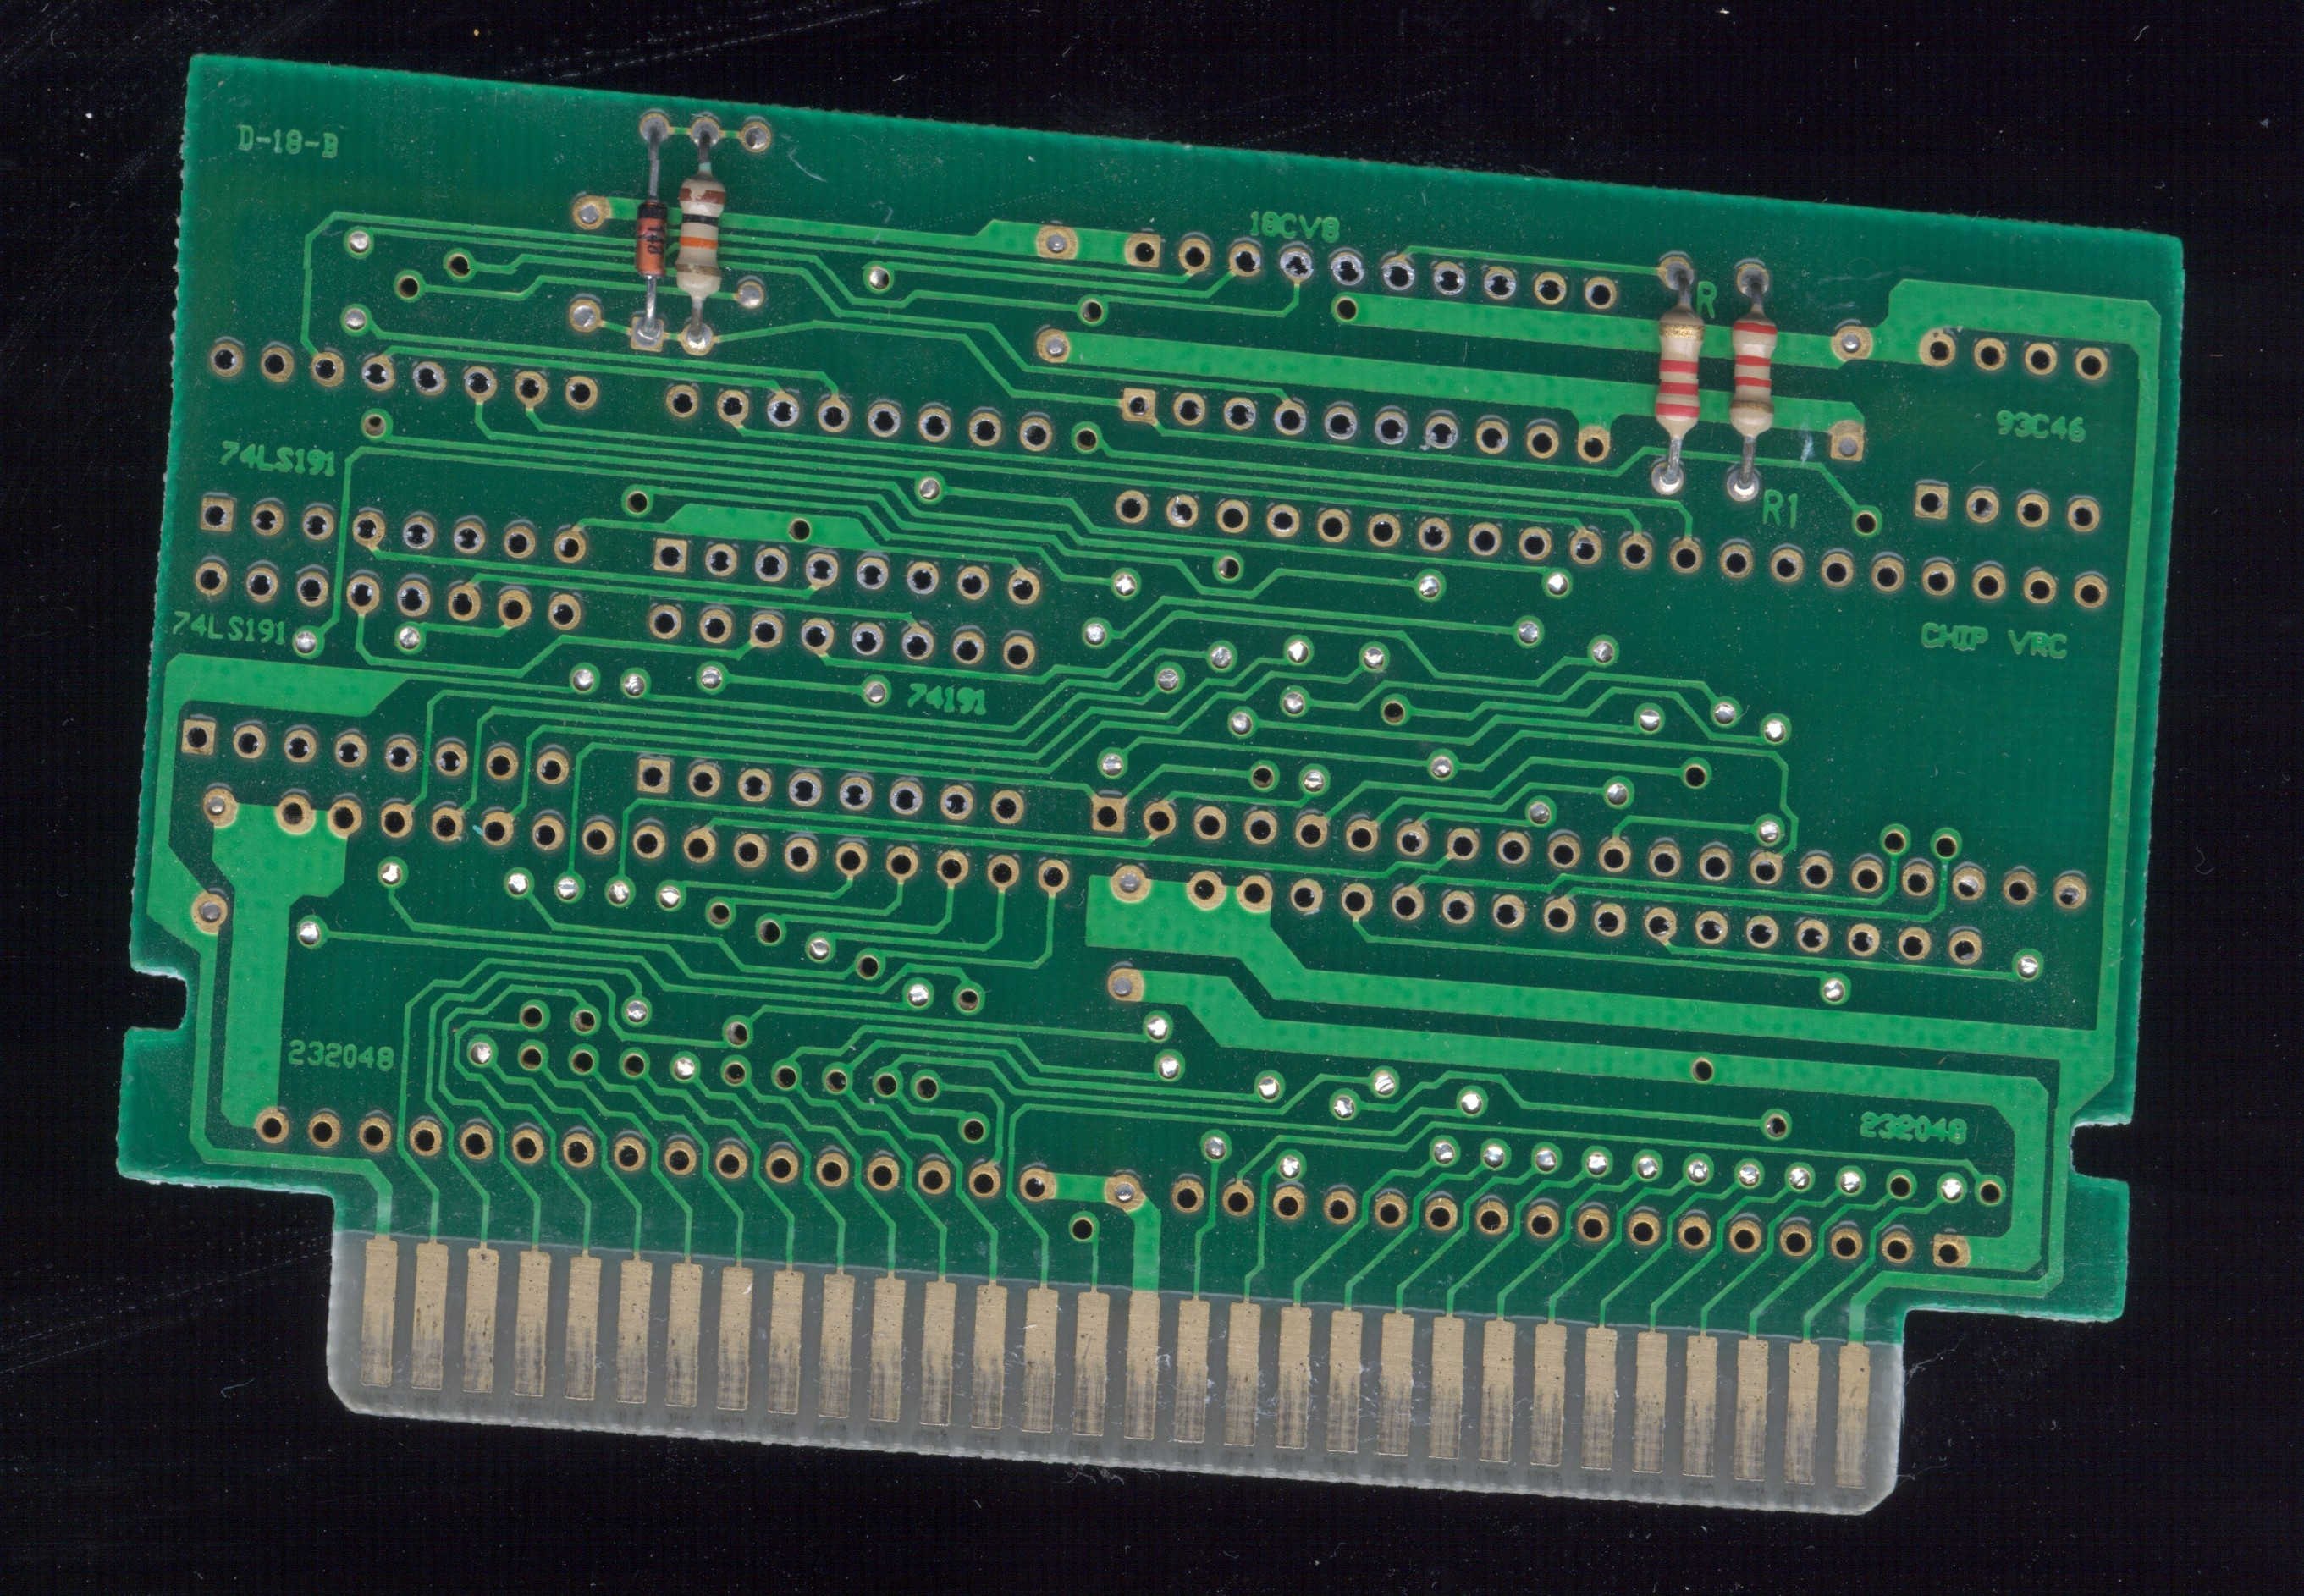 Nesdevcom View Topic 4 Interesting Pcbs With Photos Electronics Manufacturerelectro Plate Circuitry Dragon Circuits Game Ball Z 2 Ported From Bandai 24c02 One Of The Very Few Games That Uses Vrc2 Dip8 Eprom Ax5705 Is This Chip Can Also Be Seen Under Name